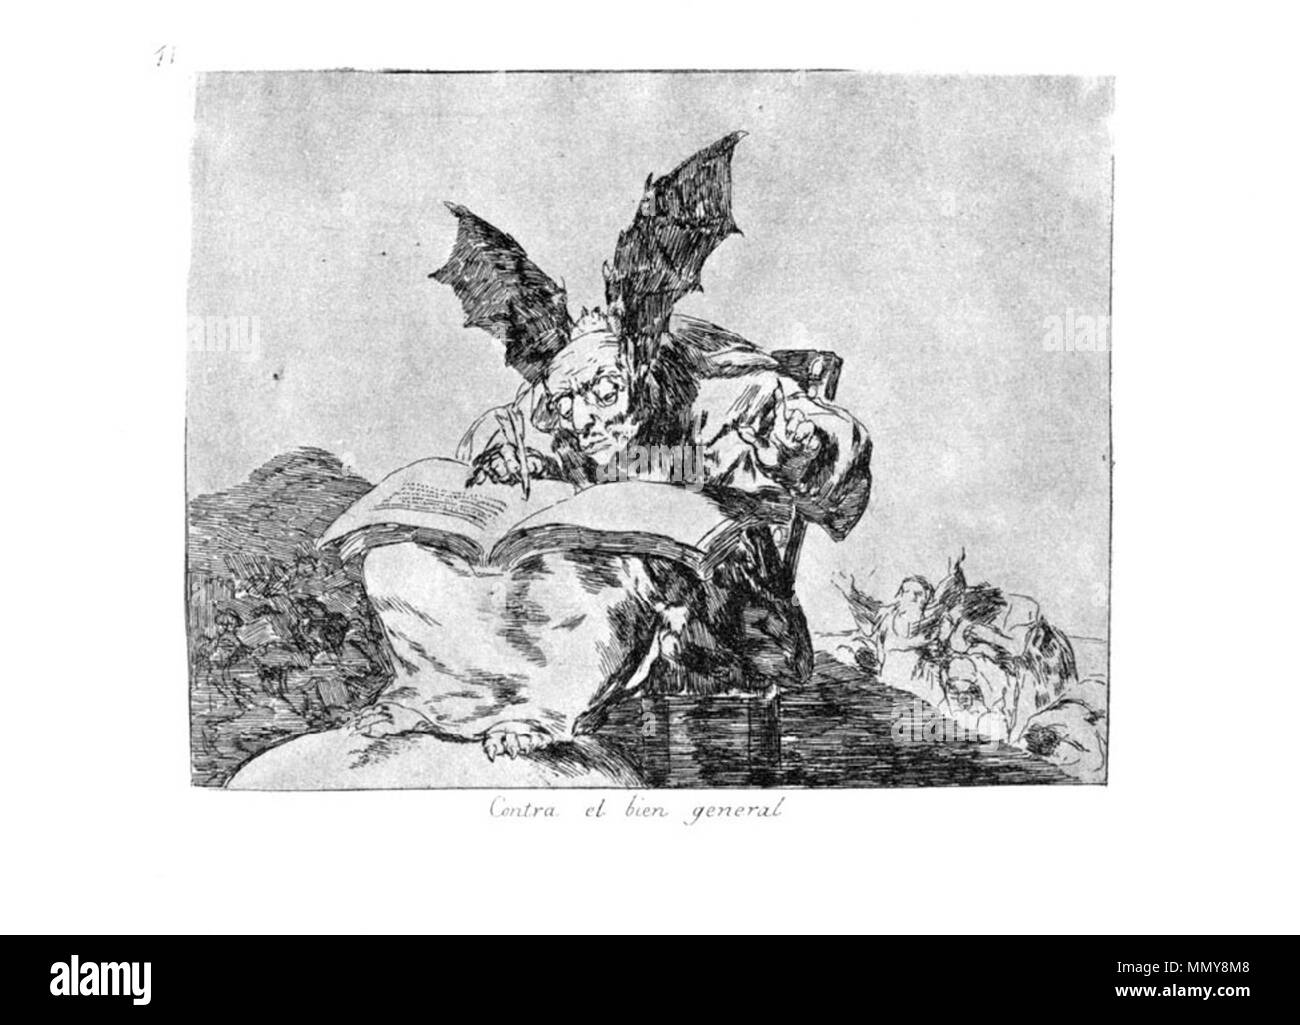 .  Plate 71: Contra el bien general (Against the common good)  . 1810s.   Francisco Goya (1746–1828)   Alternative names Francisco Goya Lucientes, Francisco de Goya y Lucientes, Francisco José Goya Lucientes  Description Spanish painter, printmaker, lithographer, engraver and etcher  Date of birth/death 30 March 1746 16 April 1828  Location of birth/death Fuendetodos Bordeaux  Work location Madrid, Zaragoza, Bordeaux  Authority control  : Q5432 VIAF:?54343141 ISNI:?0000 0001 2280 1608 ULAN:?500118936 LCCN:?n79003363 NLA:?36545788 WorldCat Goya-Guerra (71) - Stock Image